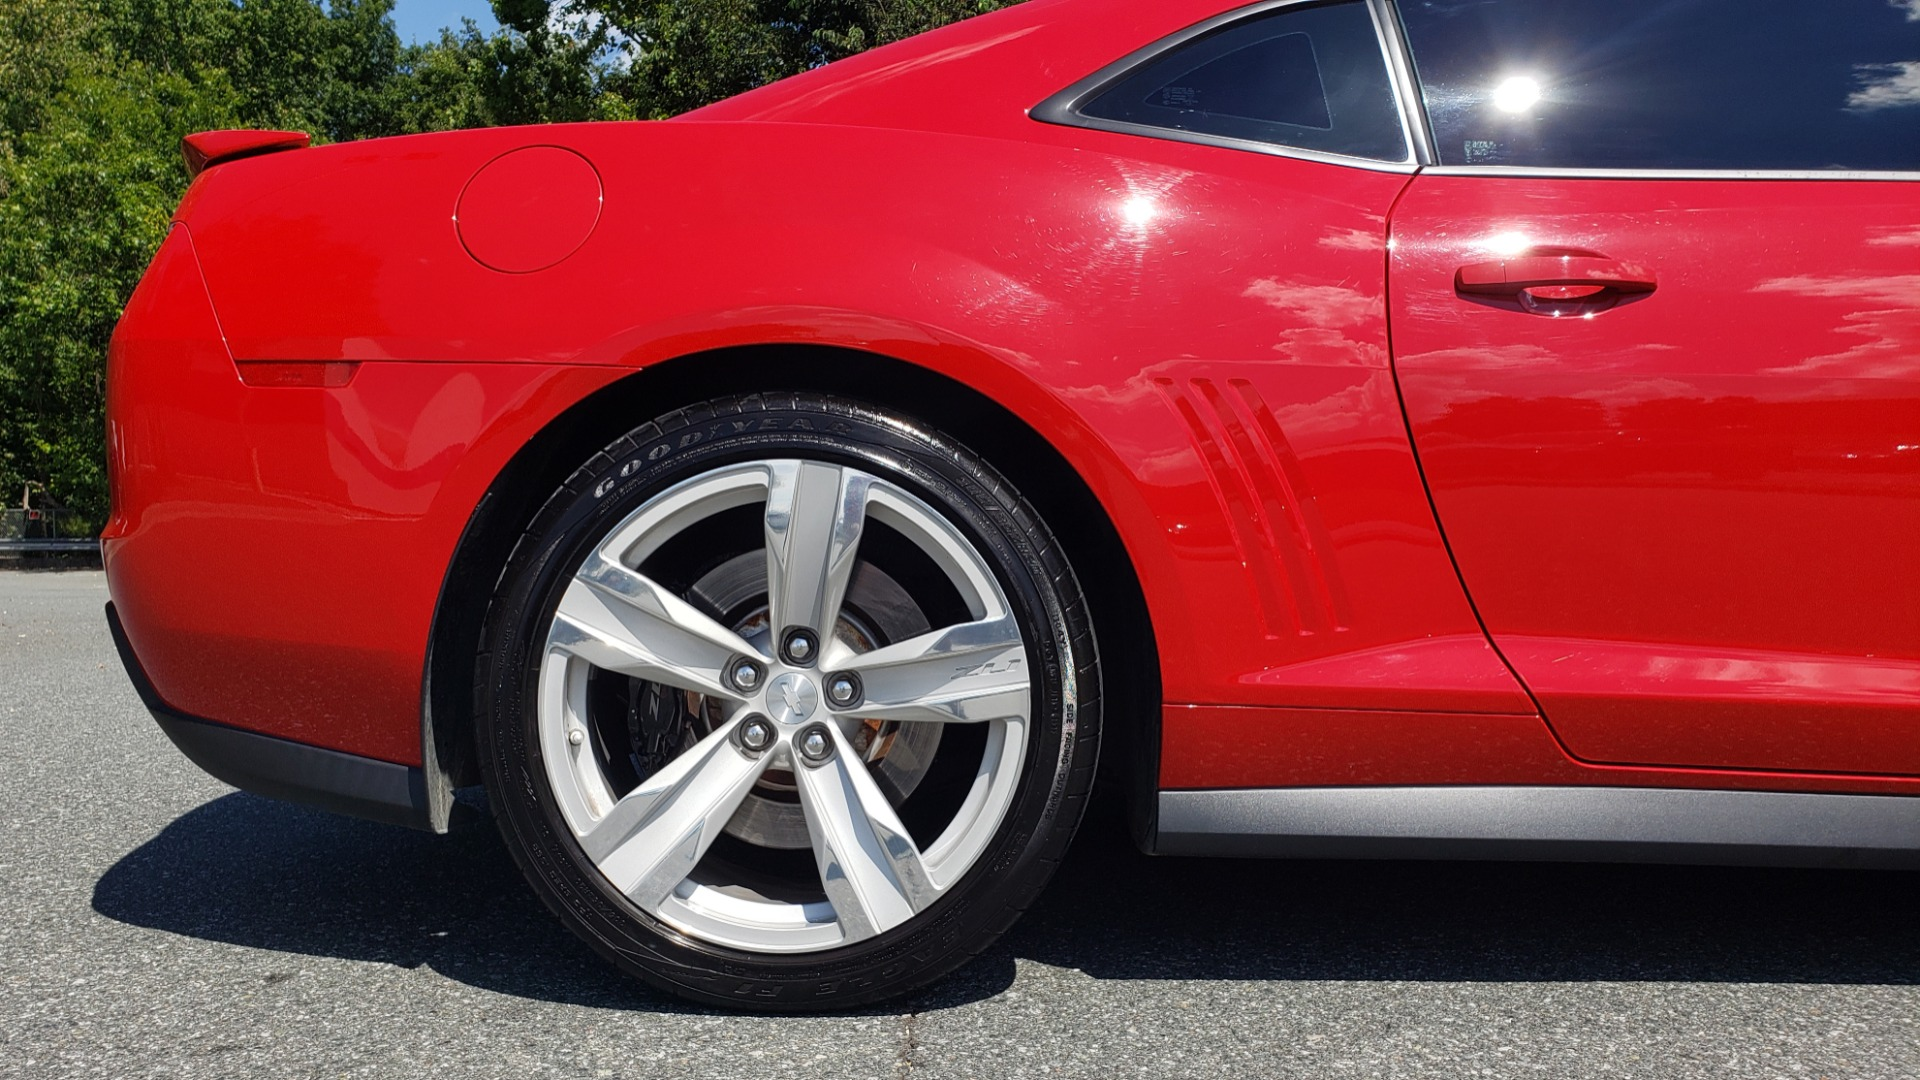 Used 2013 Chevrolet CAMARO ZL1 580HP / AUTO / NAV / BOSTON ACOUSTIC SND / REARVIEW for sale $40,995 at Formula Imports in Charlotte NC 28227 87